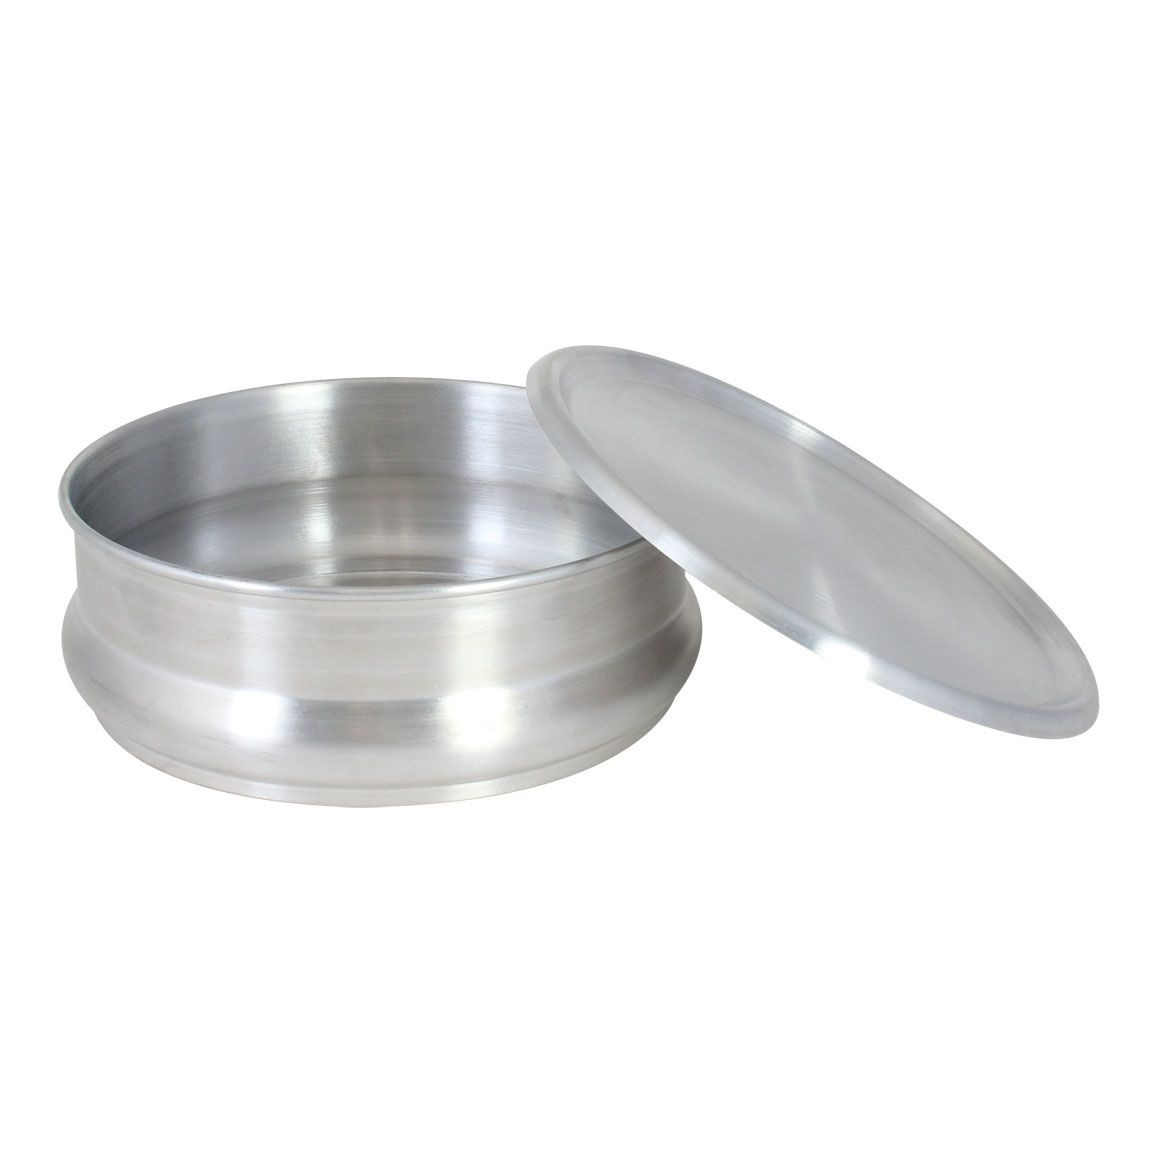 Thunder Group ALDP048C Dough Pan Cover For Dough Pan ALDP048 - 1 doz